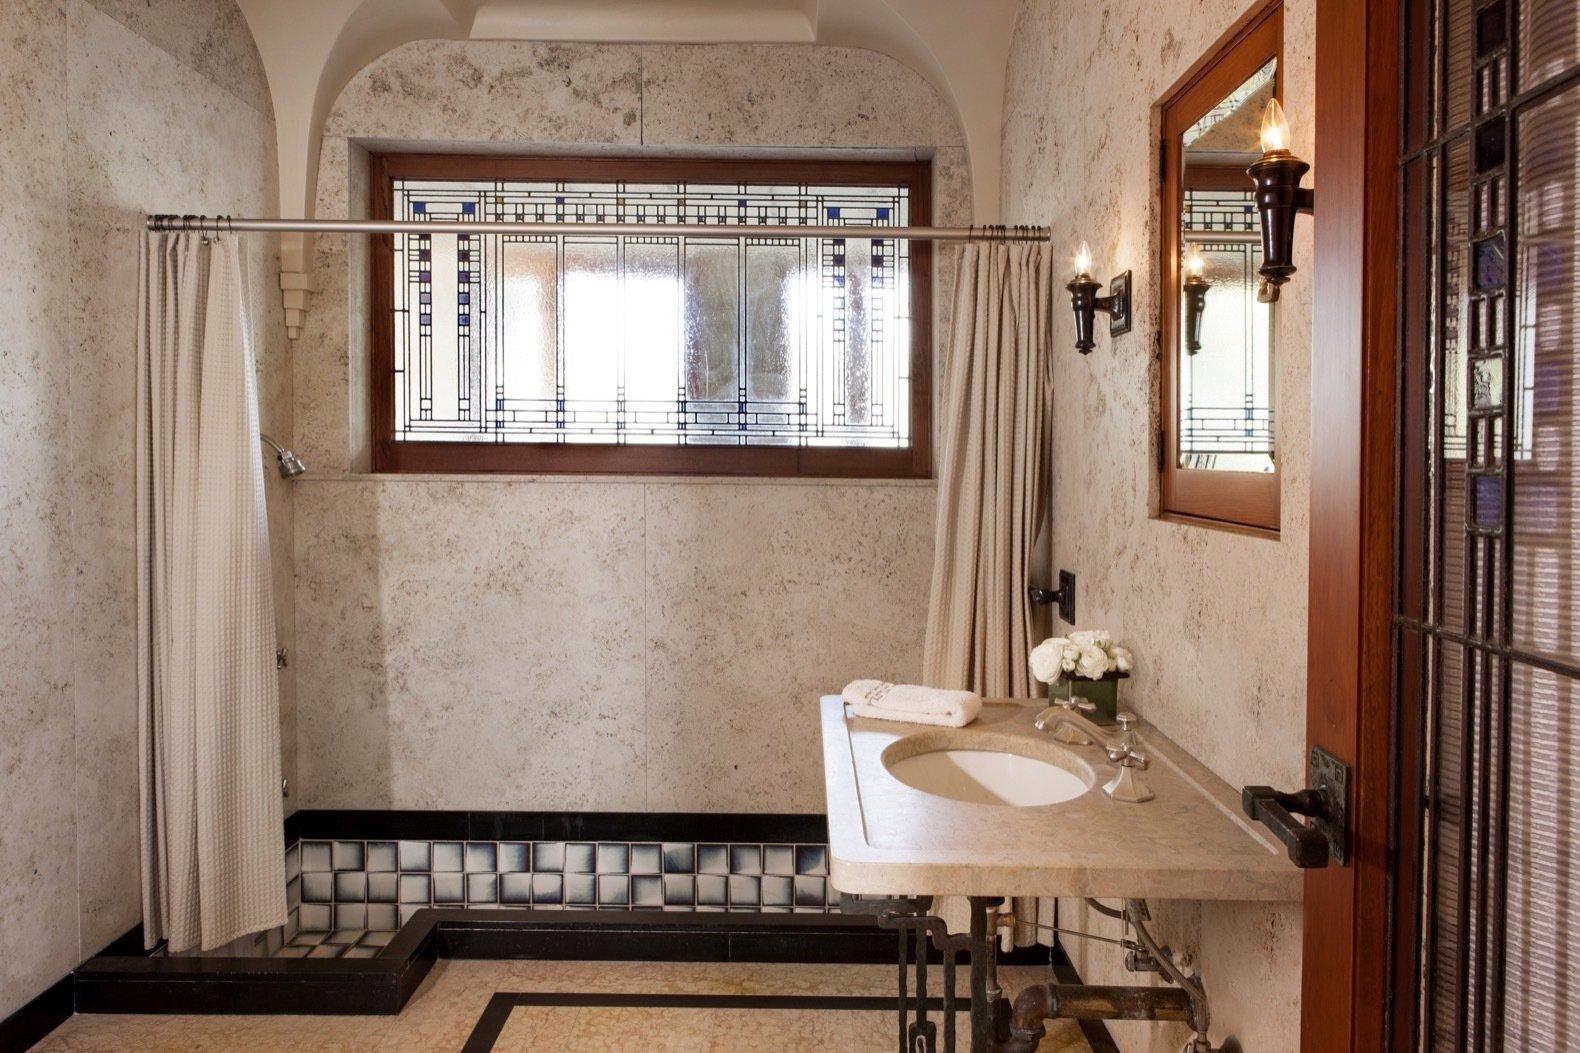 Bath Room, Soaking Tub, Undermount Sink, Ceramic Tile Floor, Wall Lighting, Wall Mount Sink, and Full Shower A look inside one of the other bathrooms.   Photo 20 of 23 in Frank Lloyd Wright's Iconic Ennis House Is Listed For $23M